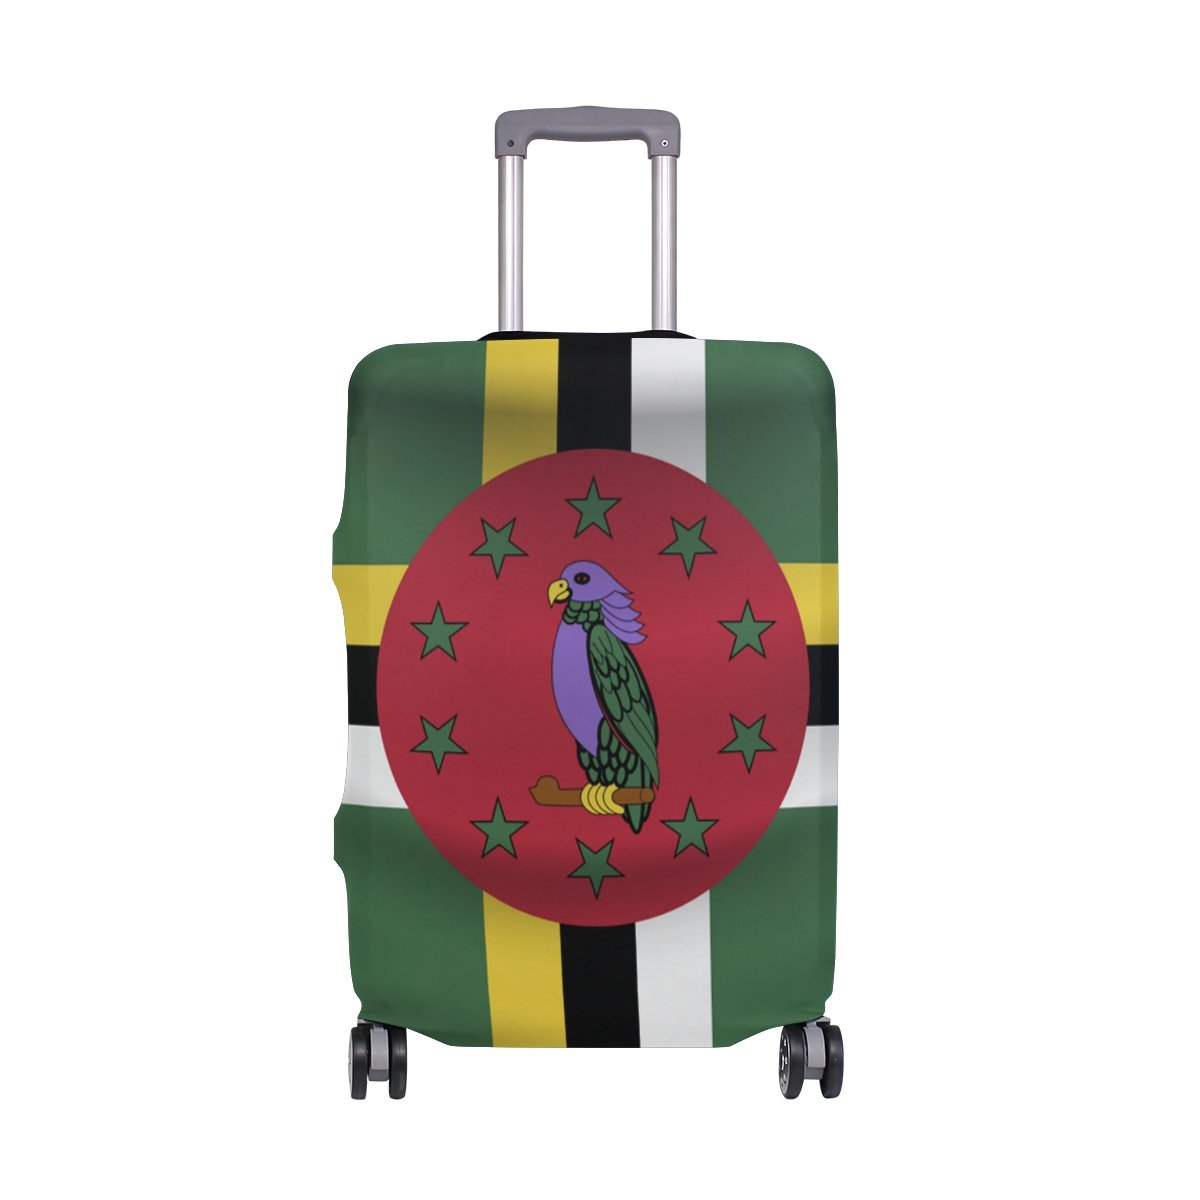 Dominica Flag Travel Luggage Protector Baggage Suitcase Cover Fits 23-26 Inch Luggage by CoolPrintAll